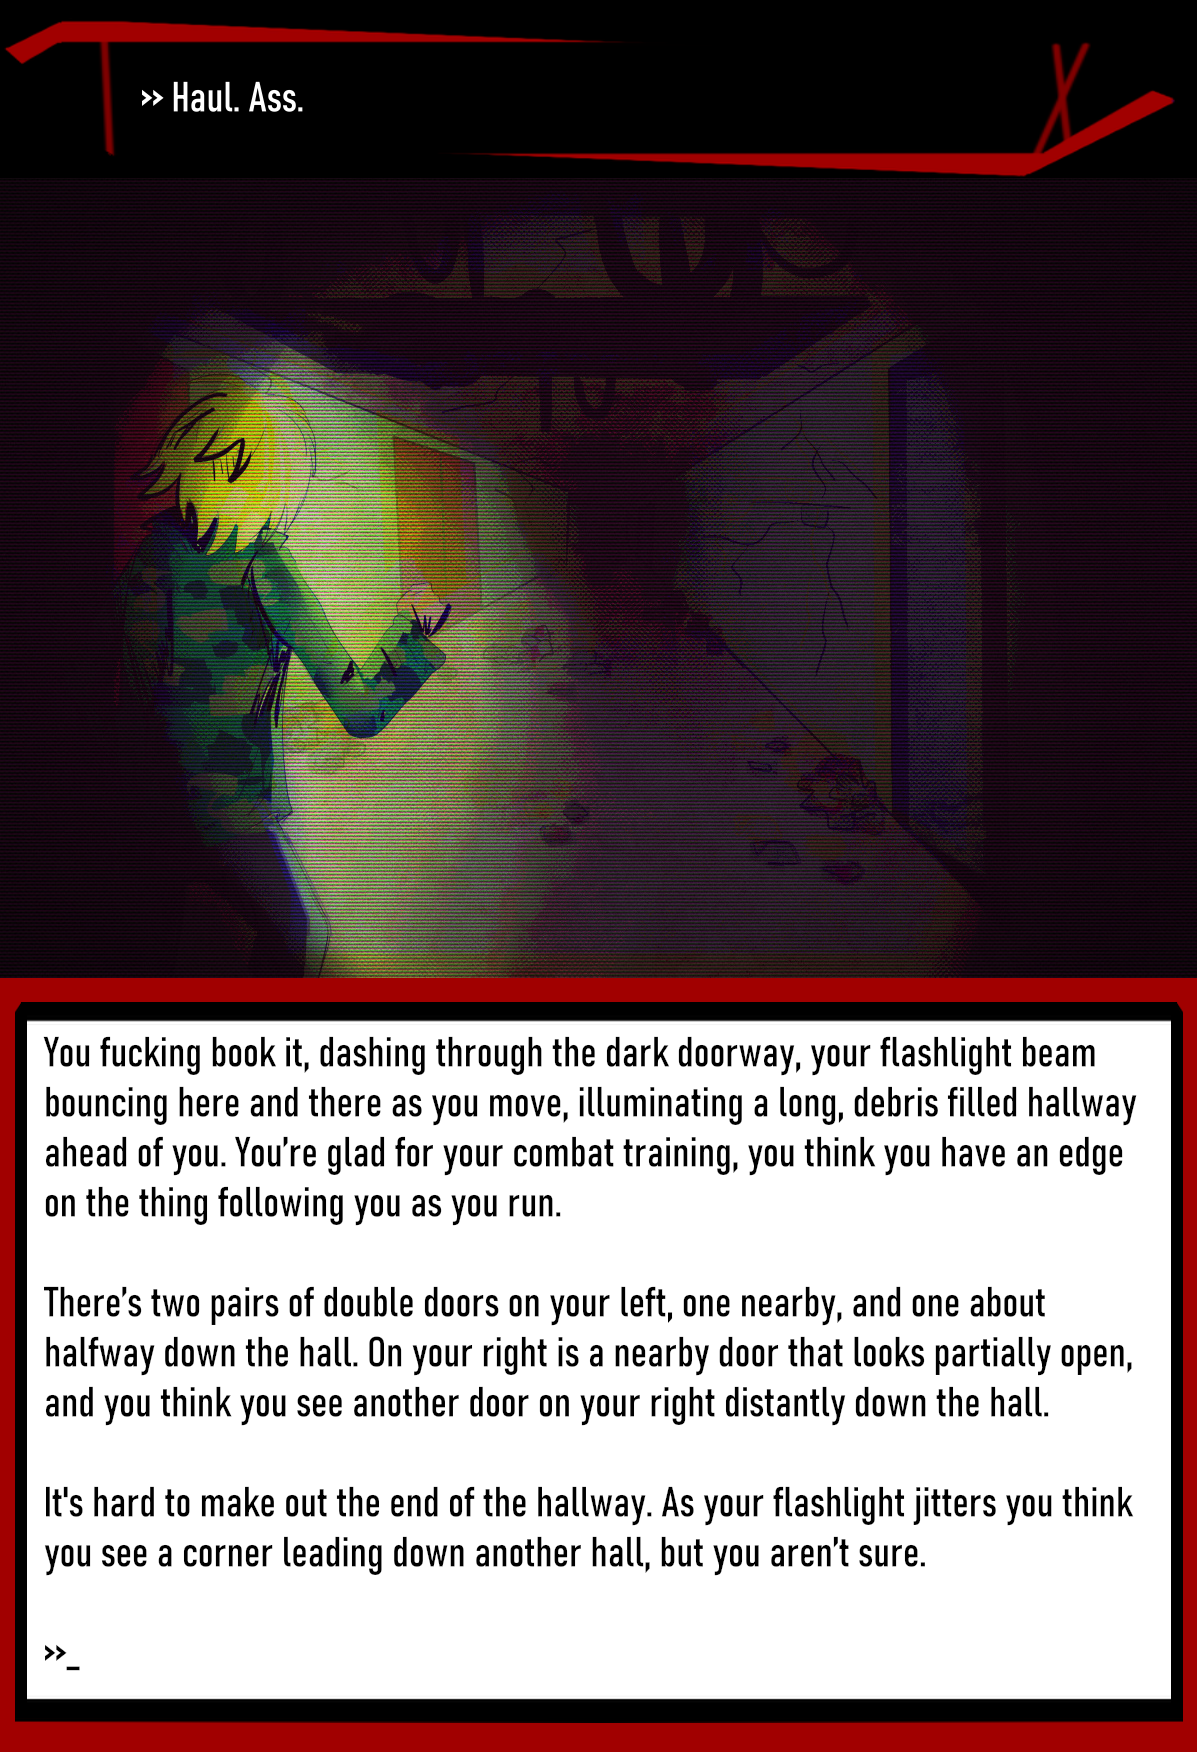 >> Haul. Ass.  You fucking book it, dashing through the dark doorway, your flashlight beam bouncing here and there as you move, illuminating a long, debris filled hallway ahead of you. You're glad for your combat training, you think you have an edge on the thing following you as you run.  There's two pairs of double doors on your left, one nearby, and one about halfway down the hall. On your right is a nearby door that looks partially open, and you think you see another door on your right distantly down the hall.  It's hard to make out the end of the hallway. As your flashlight jitters you think you see a corner leading down another hall, but you aren't sure.